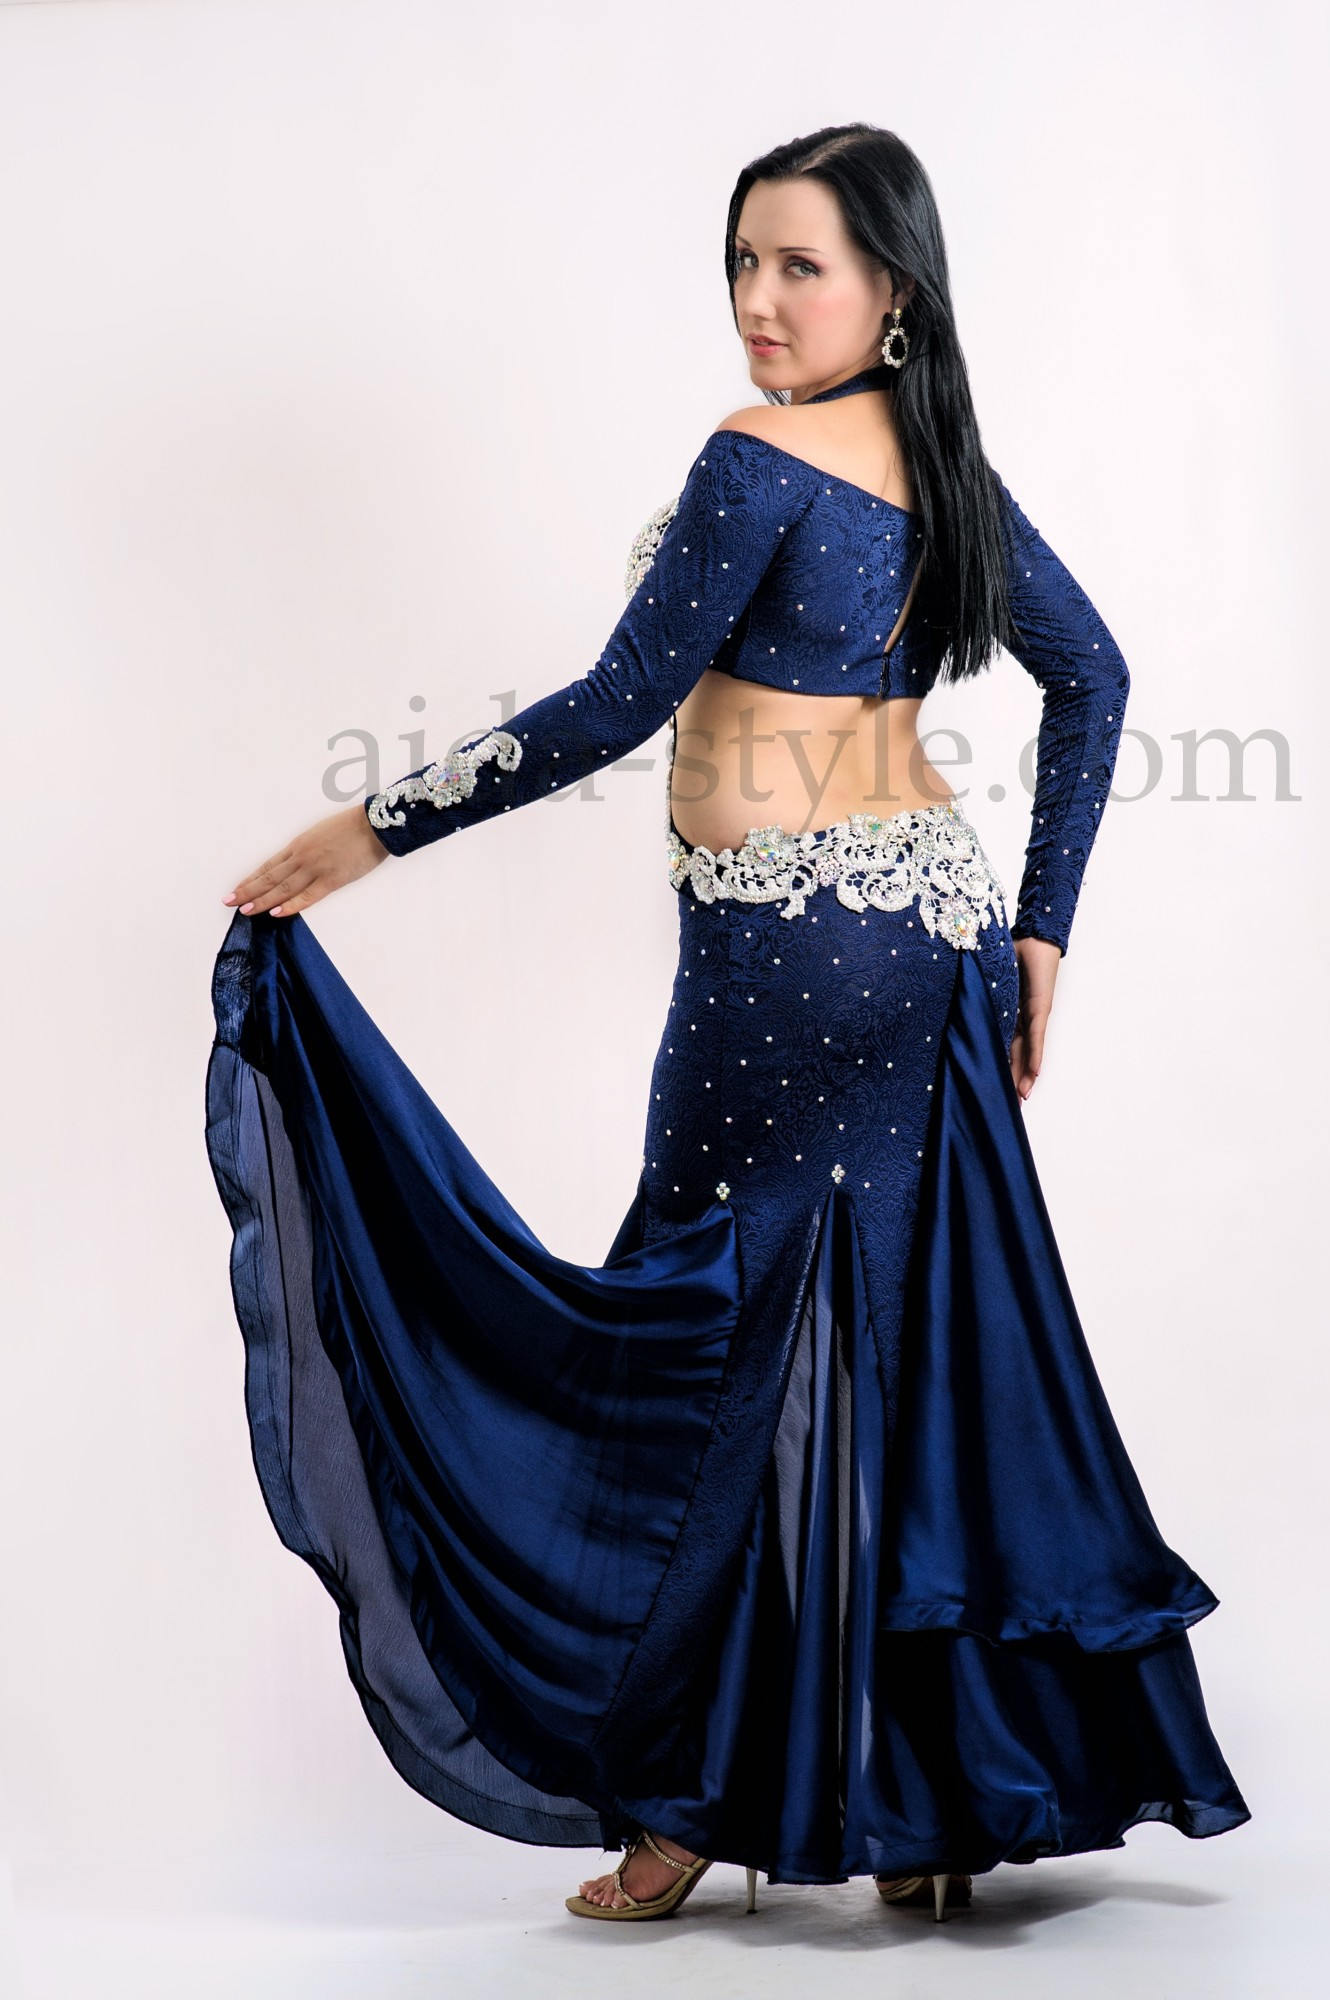 Dark blue one piece costume with mermail skirt